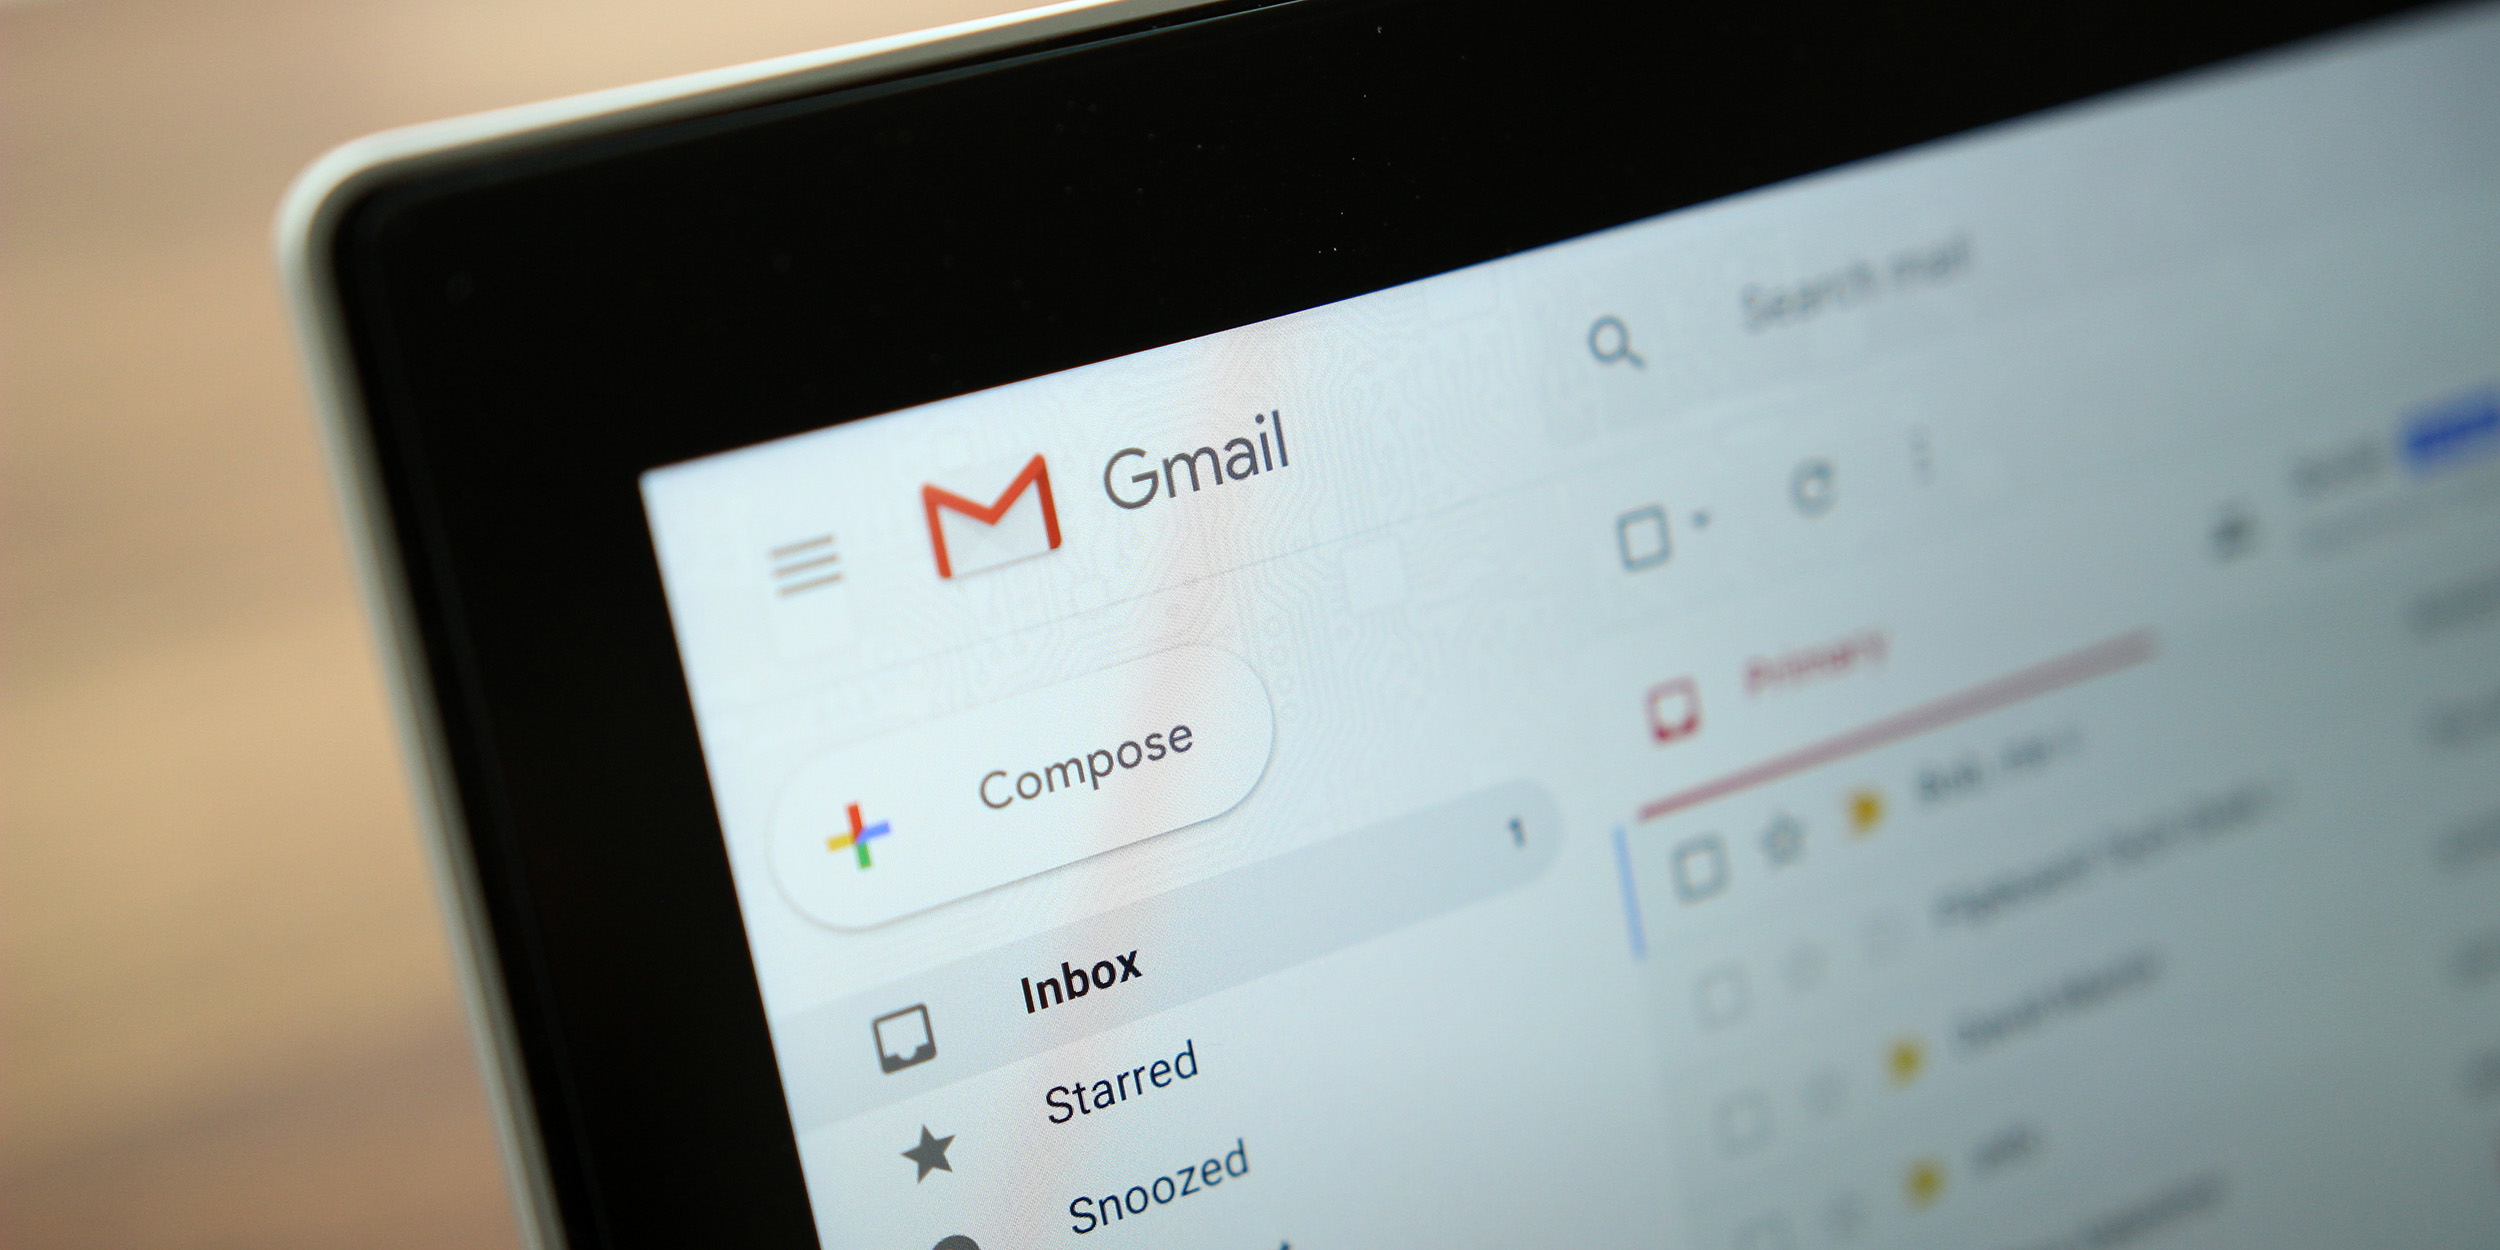 google removing contacts shortcut and old interface from legacy gmail